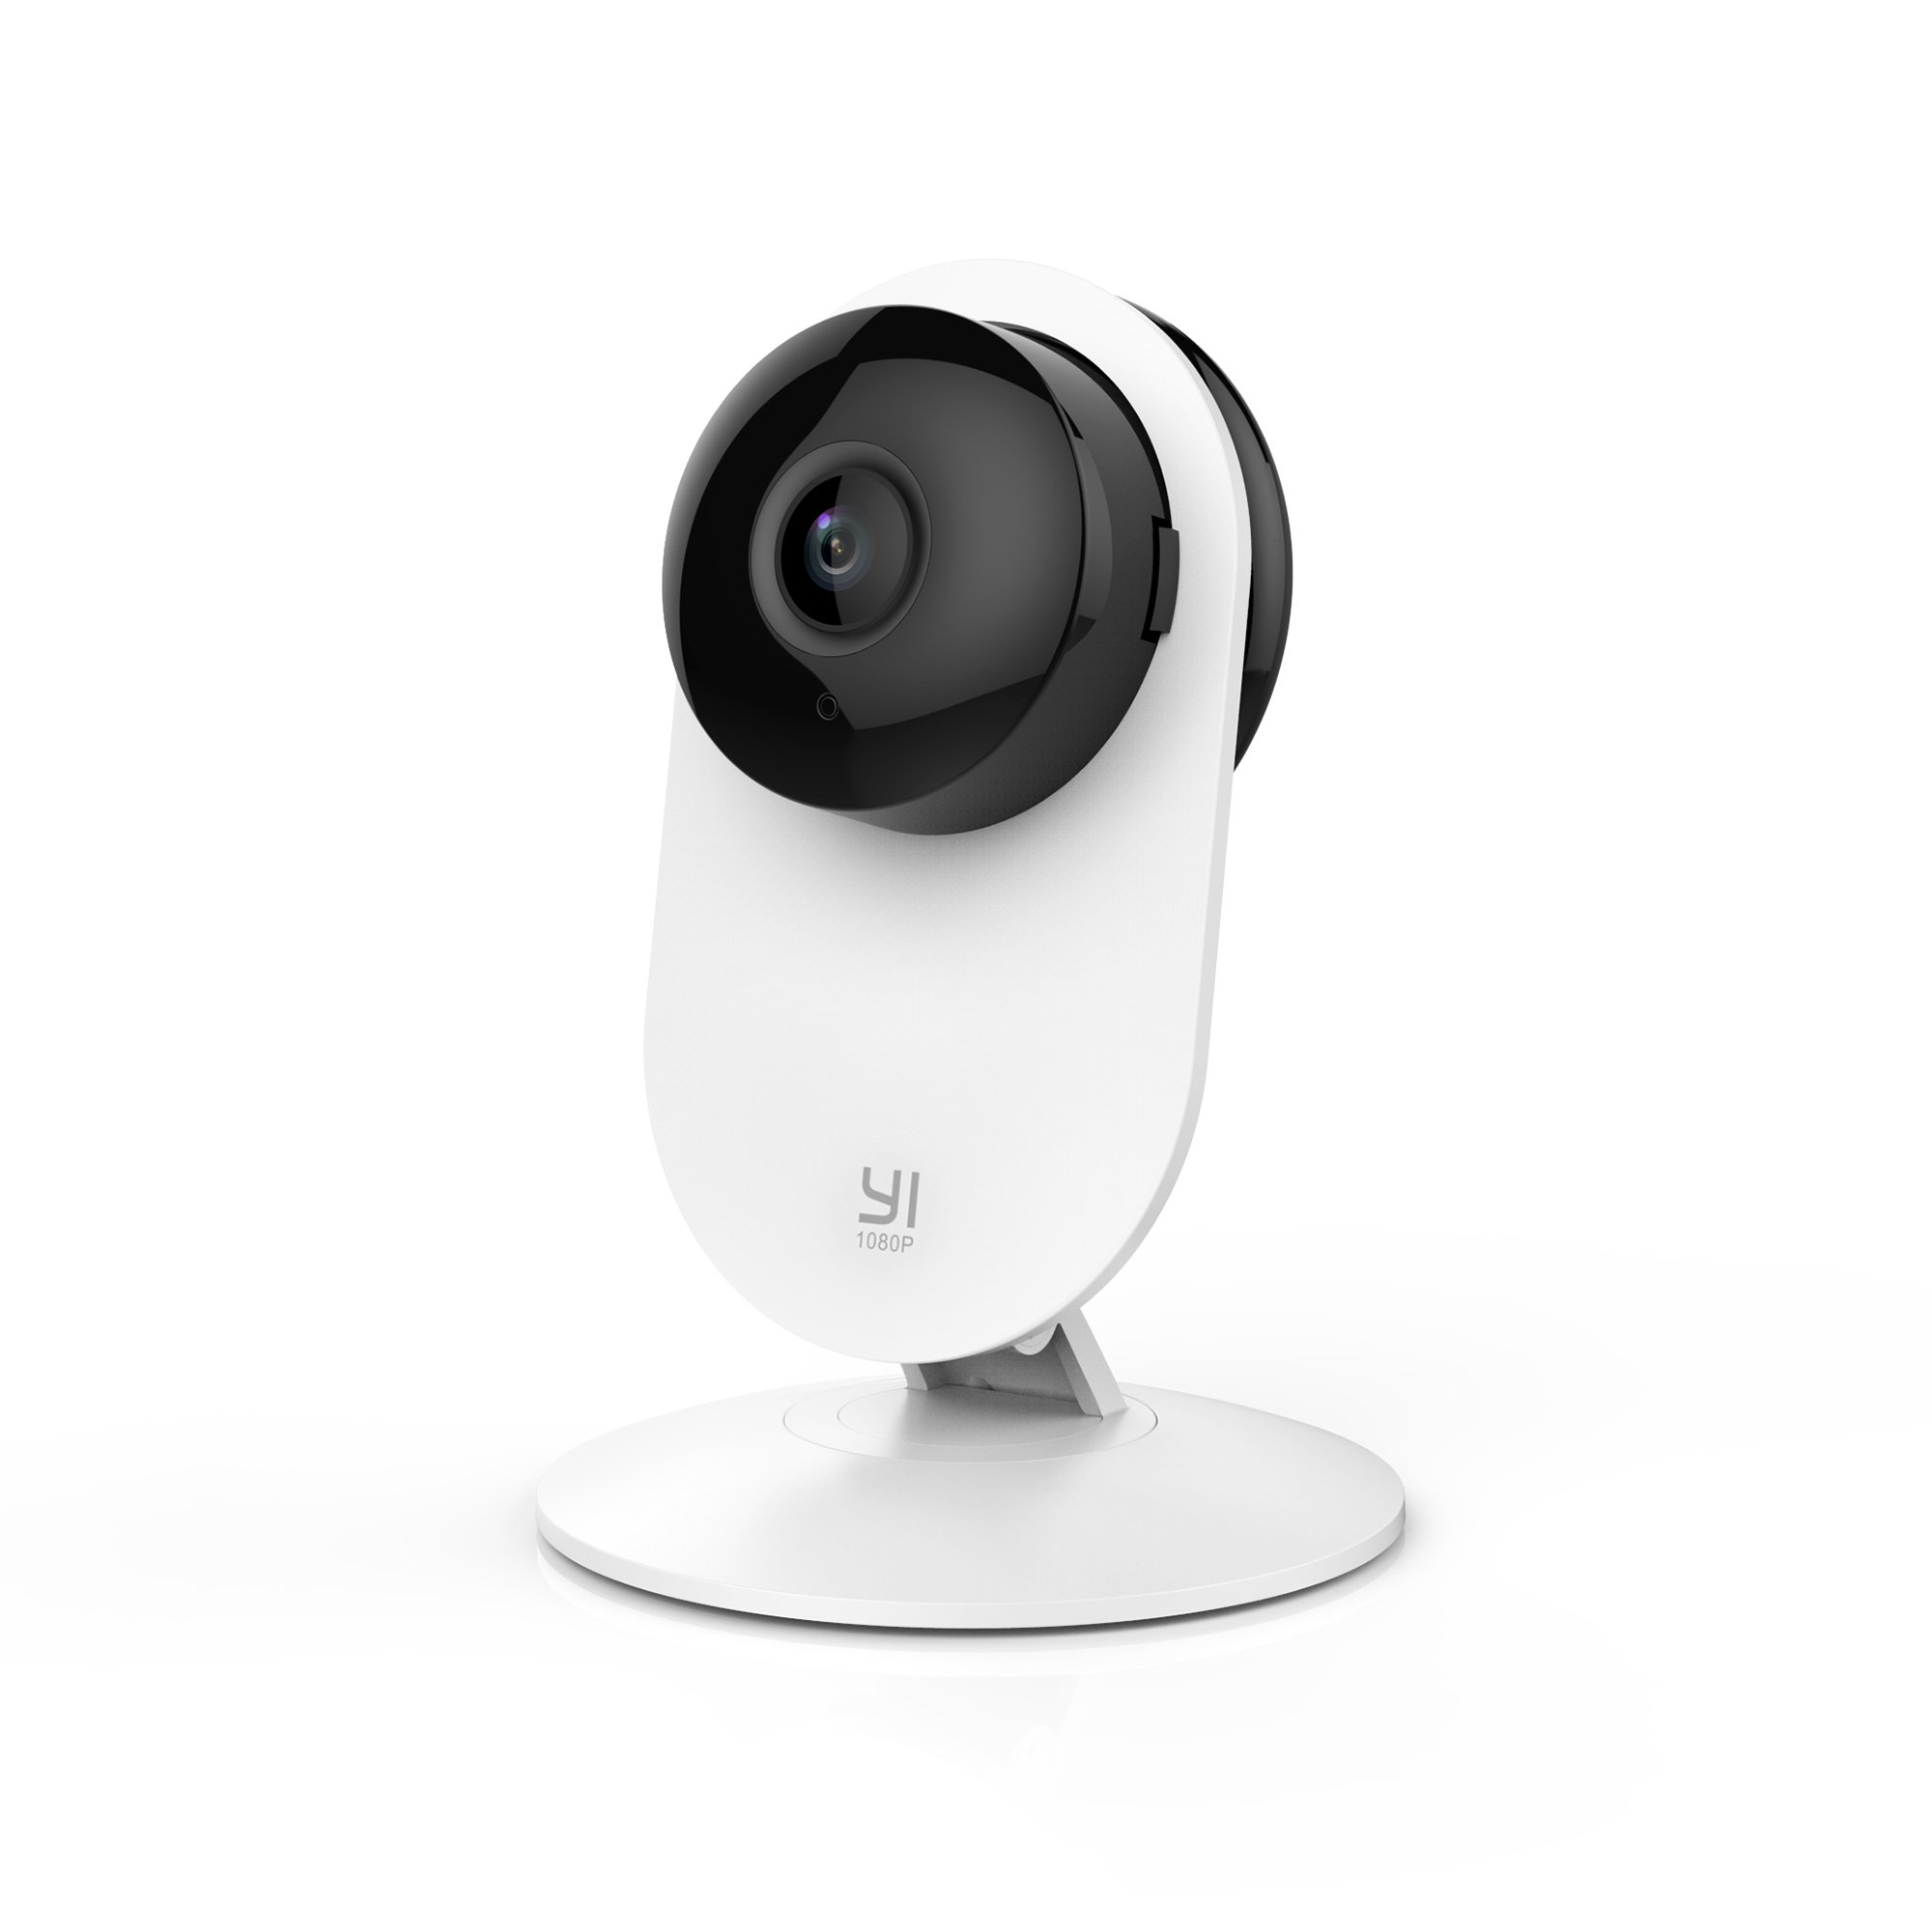 YI 1080p Home Camera, Indoor IP Security Surveillance System with Night Vision for Home/Office / Baby/Nanny / Pet Monitor with iOS, Android App - Cloud Service Available by YI